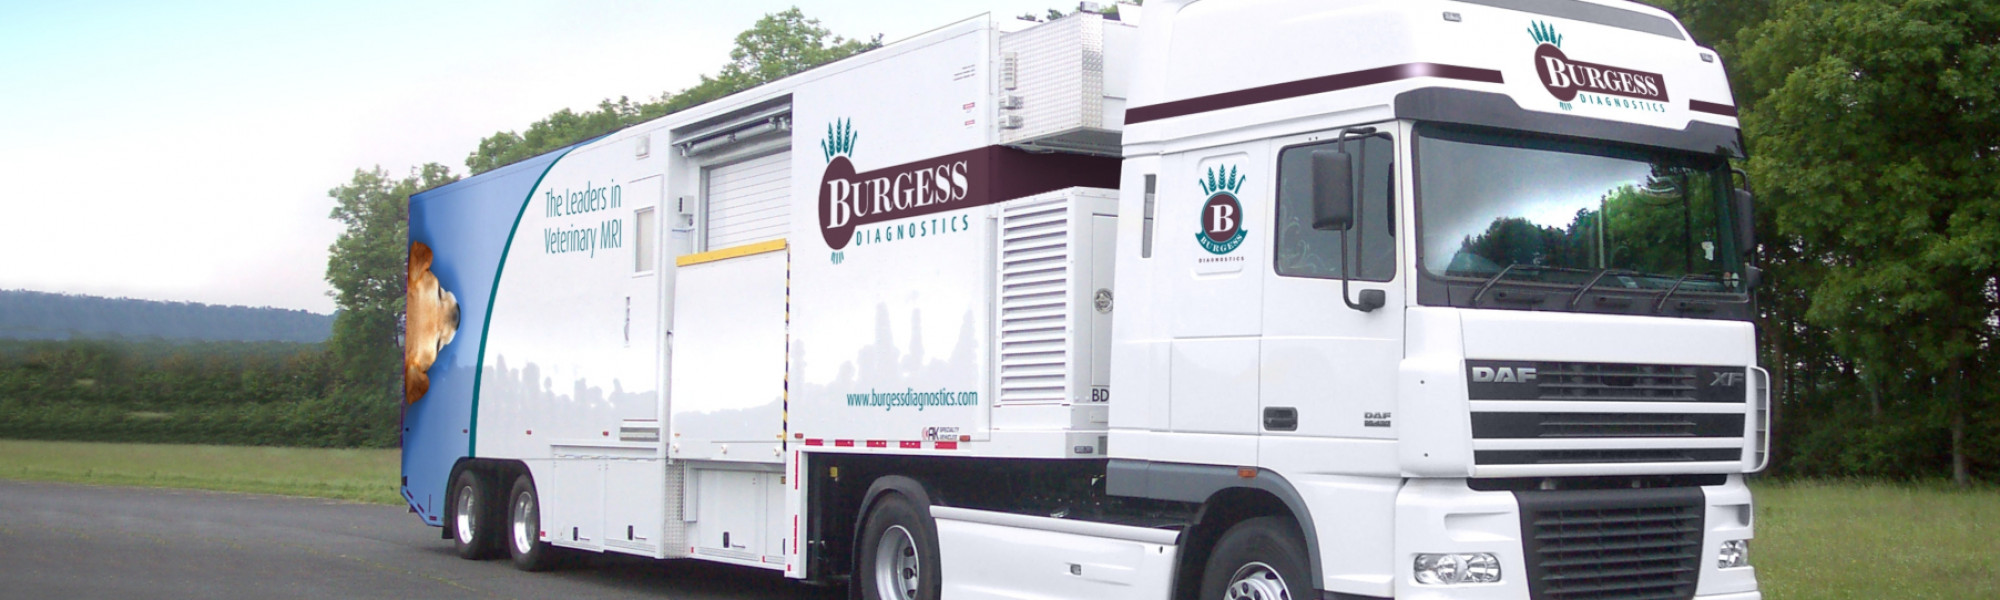 Burgess Diagnostics _ Website banners (1600px x 400px)5